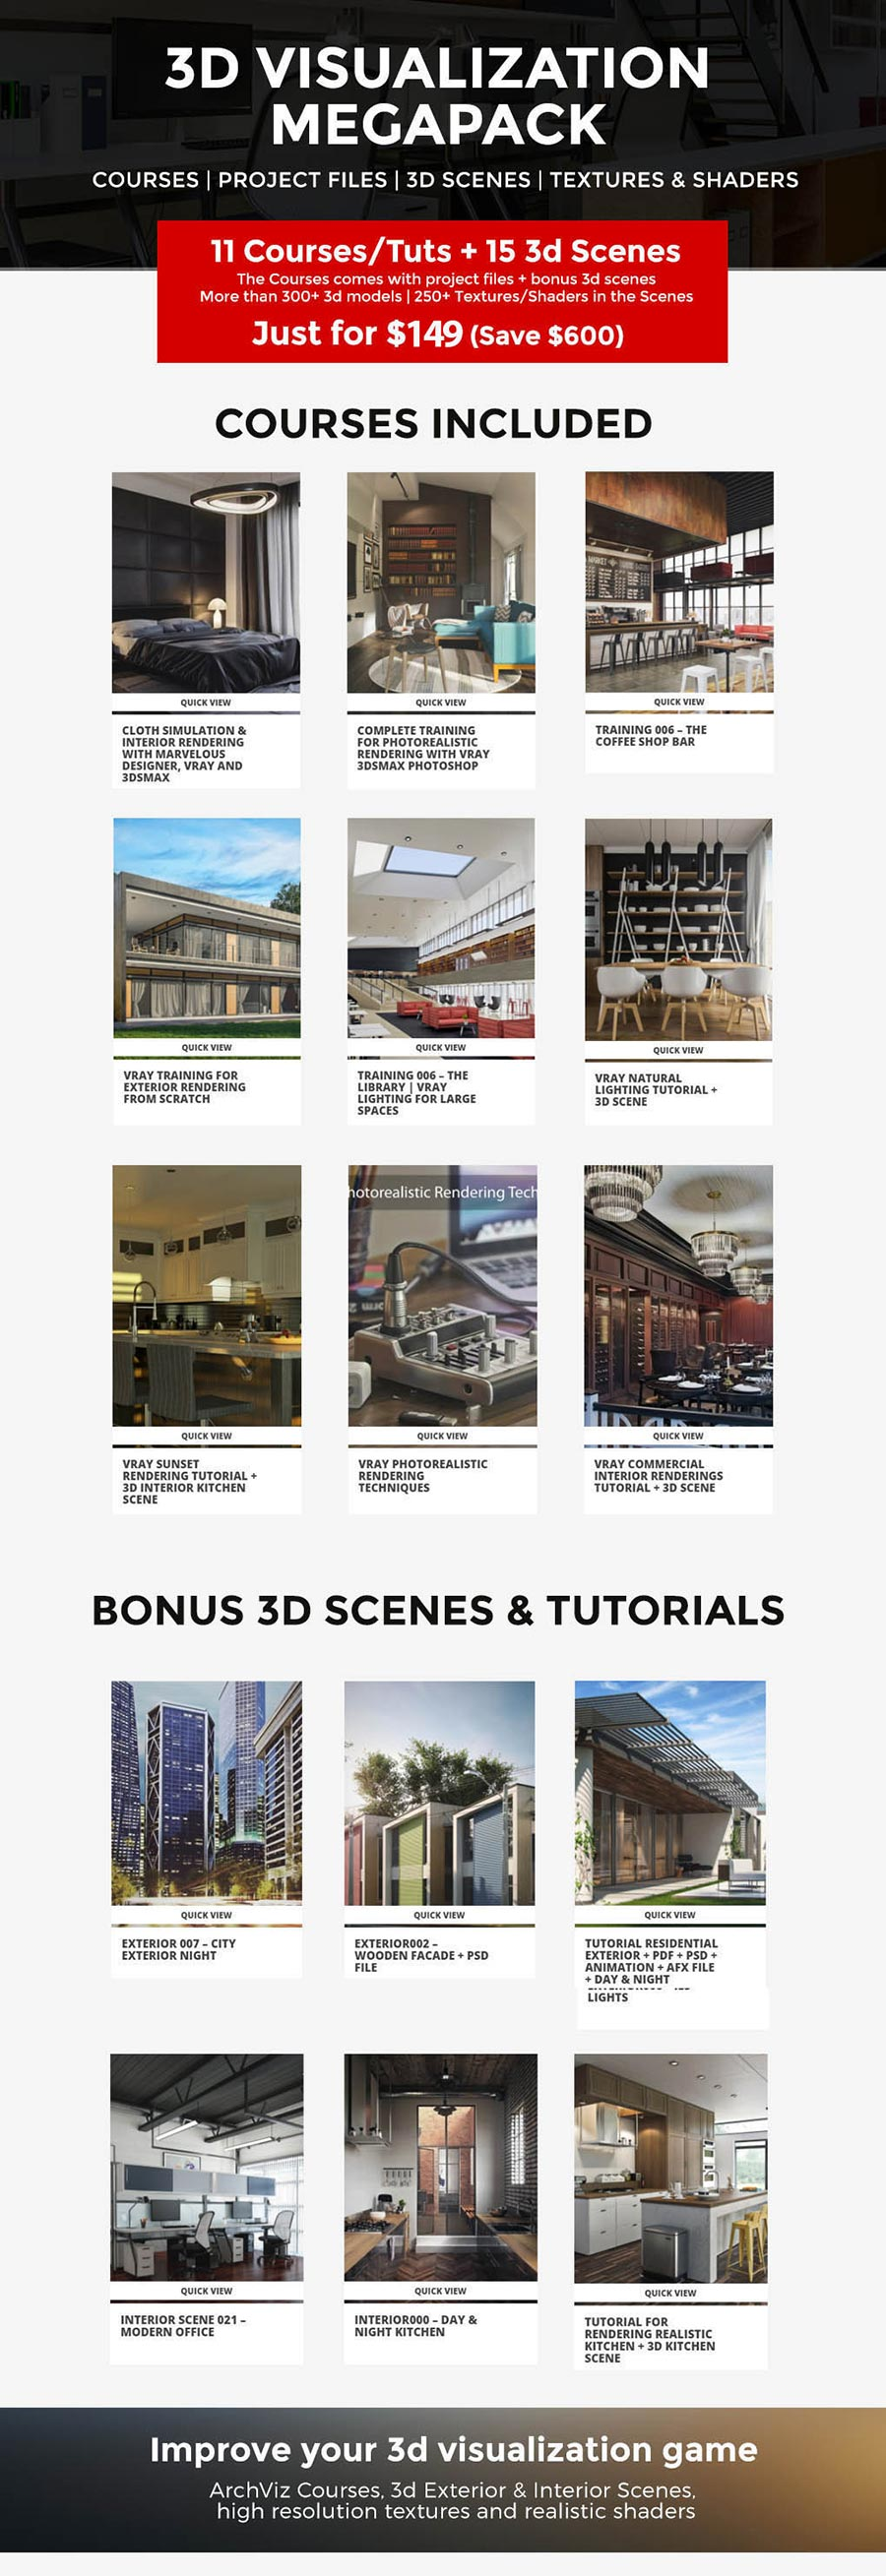 3d-visualization-megapack-buy-now2-149-3d tutorial-vray-3d scenes-3dsmax